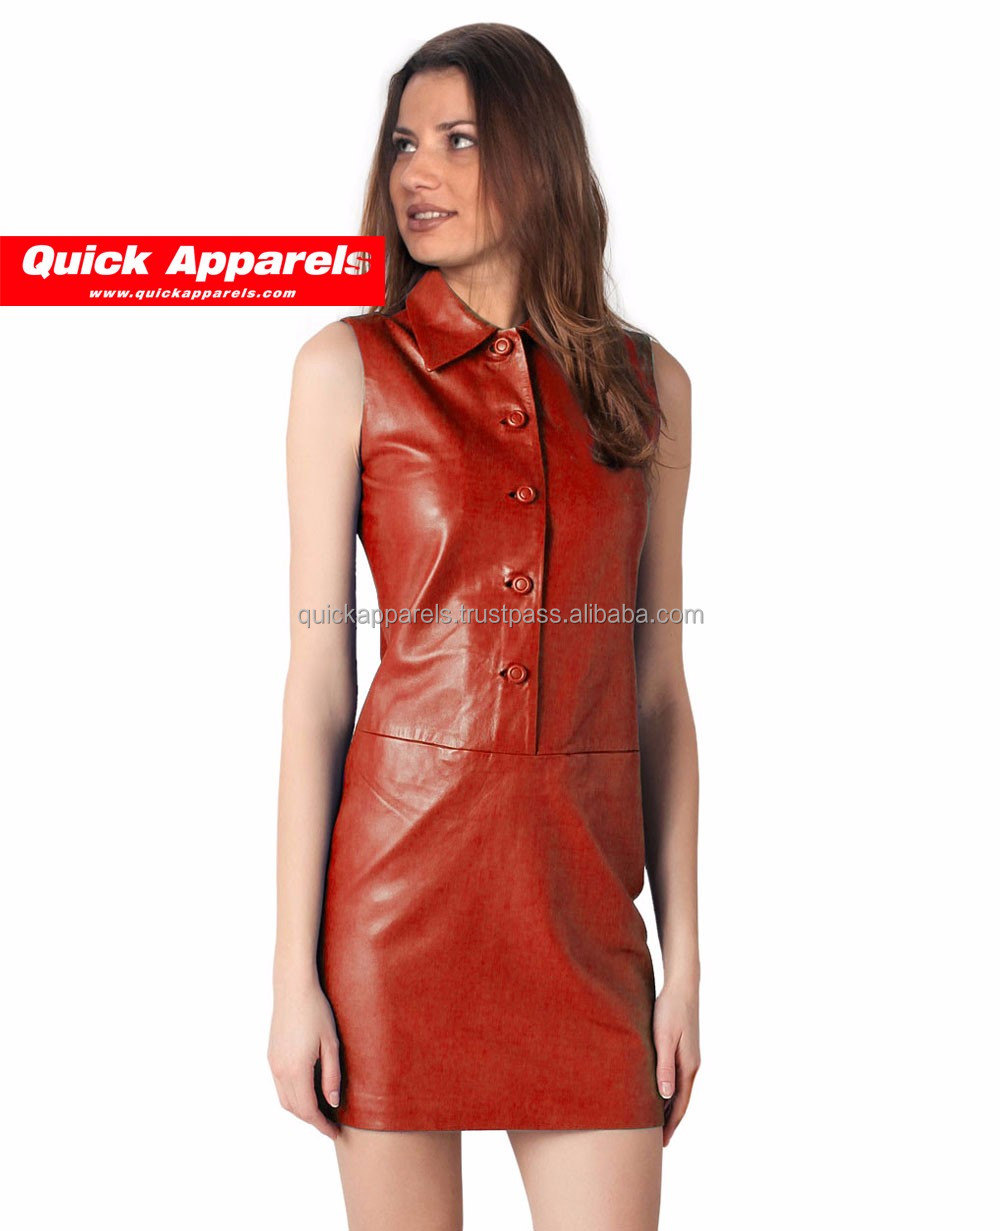 Queen van leather lace fashion women dress,Custom design elegant bodycon dress fuchsia lace party evening dress faux leather